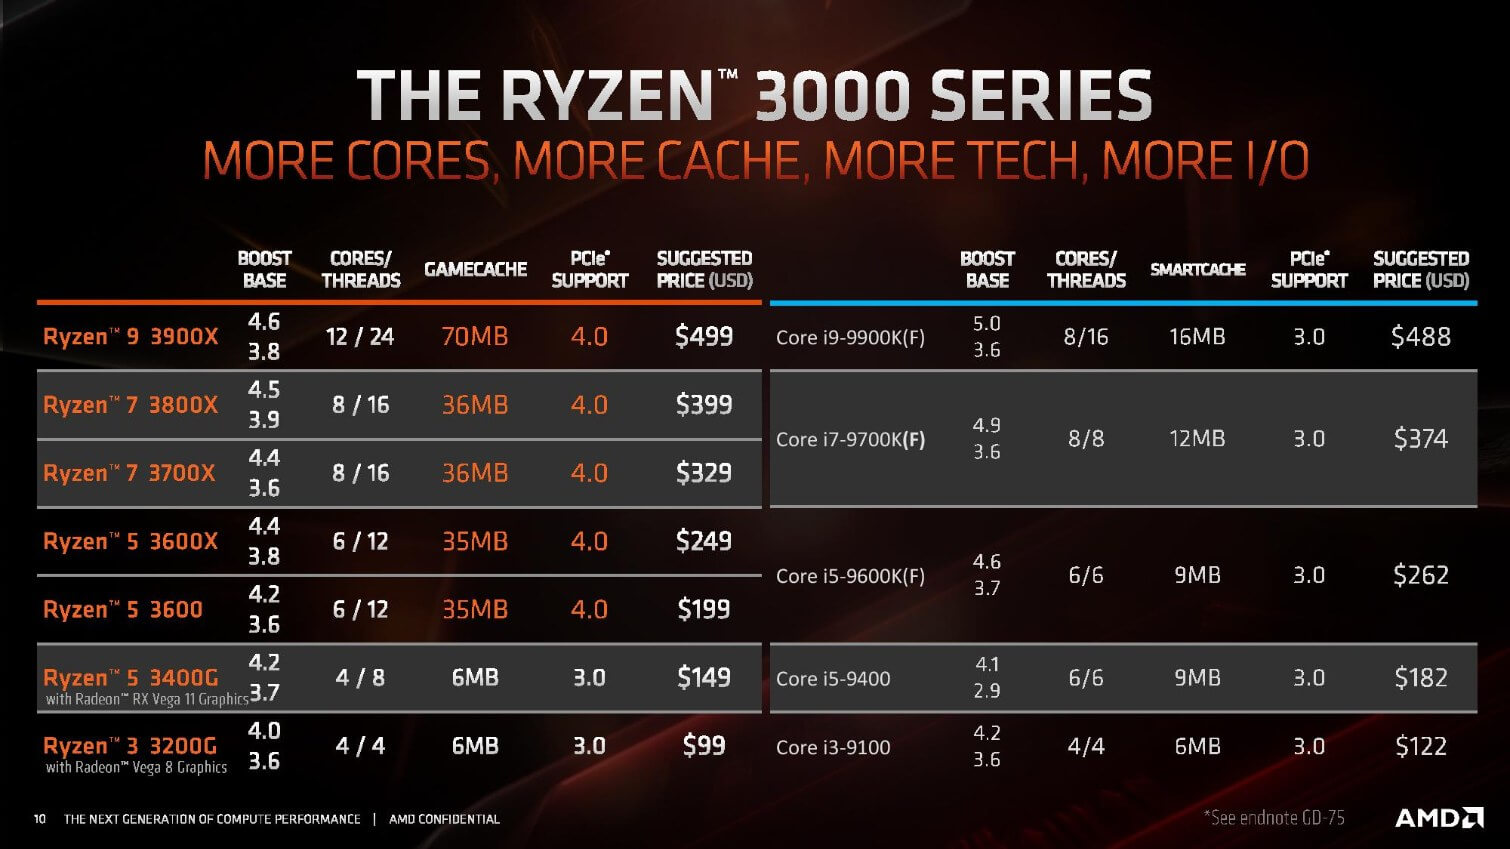 Report: Intel will cut desktop CPU prices by 10-15% as Ryzen